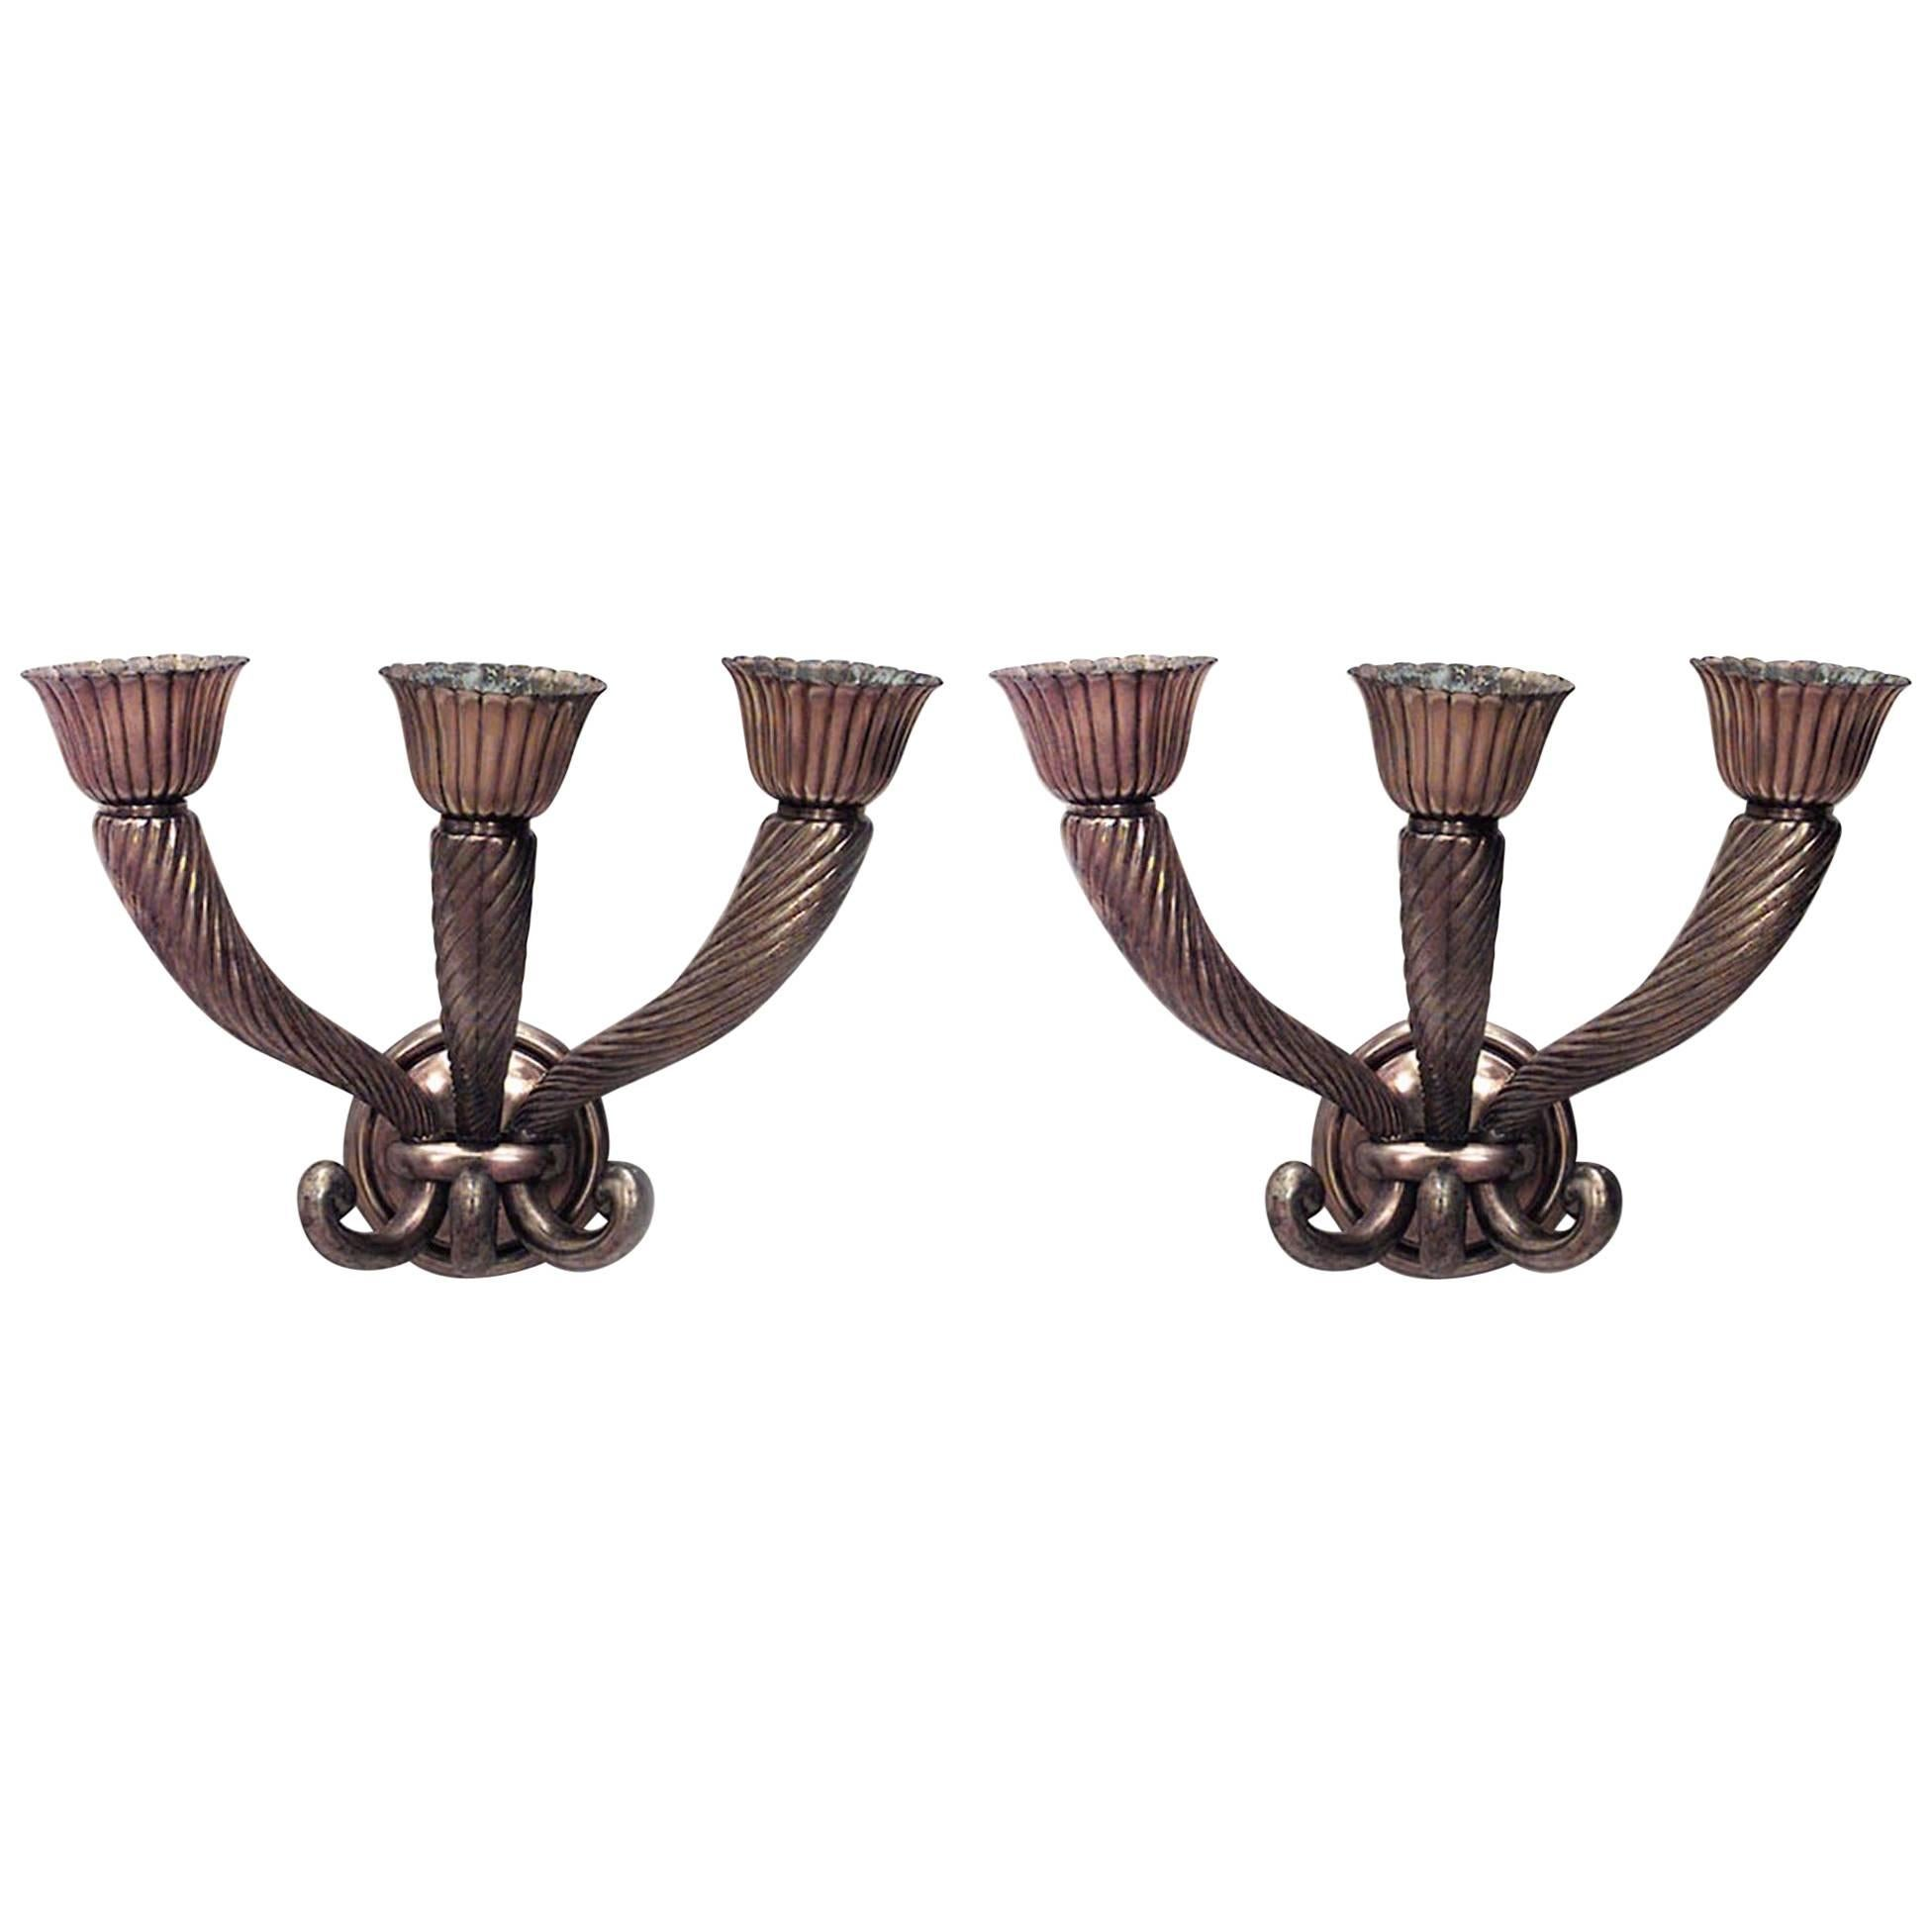 Pair of French 1940s Bronze Wall Sconces